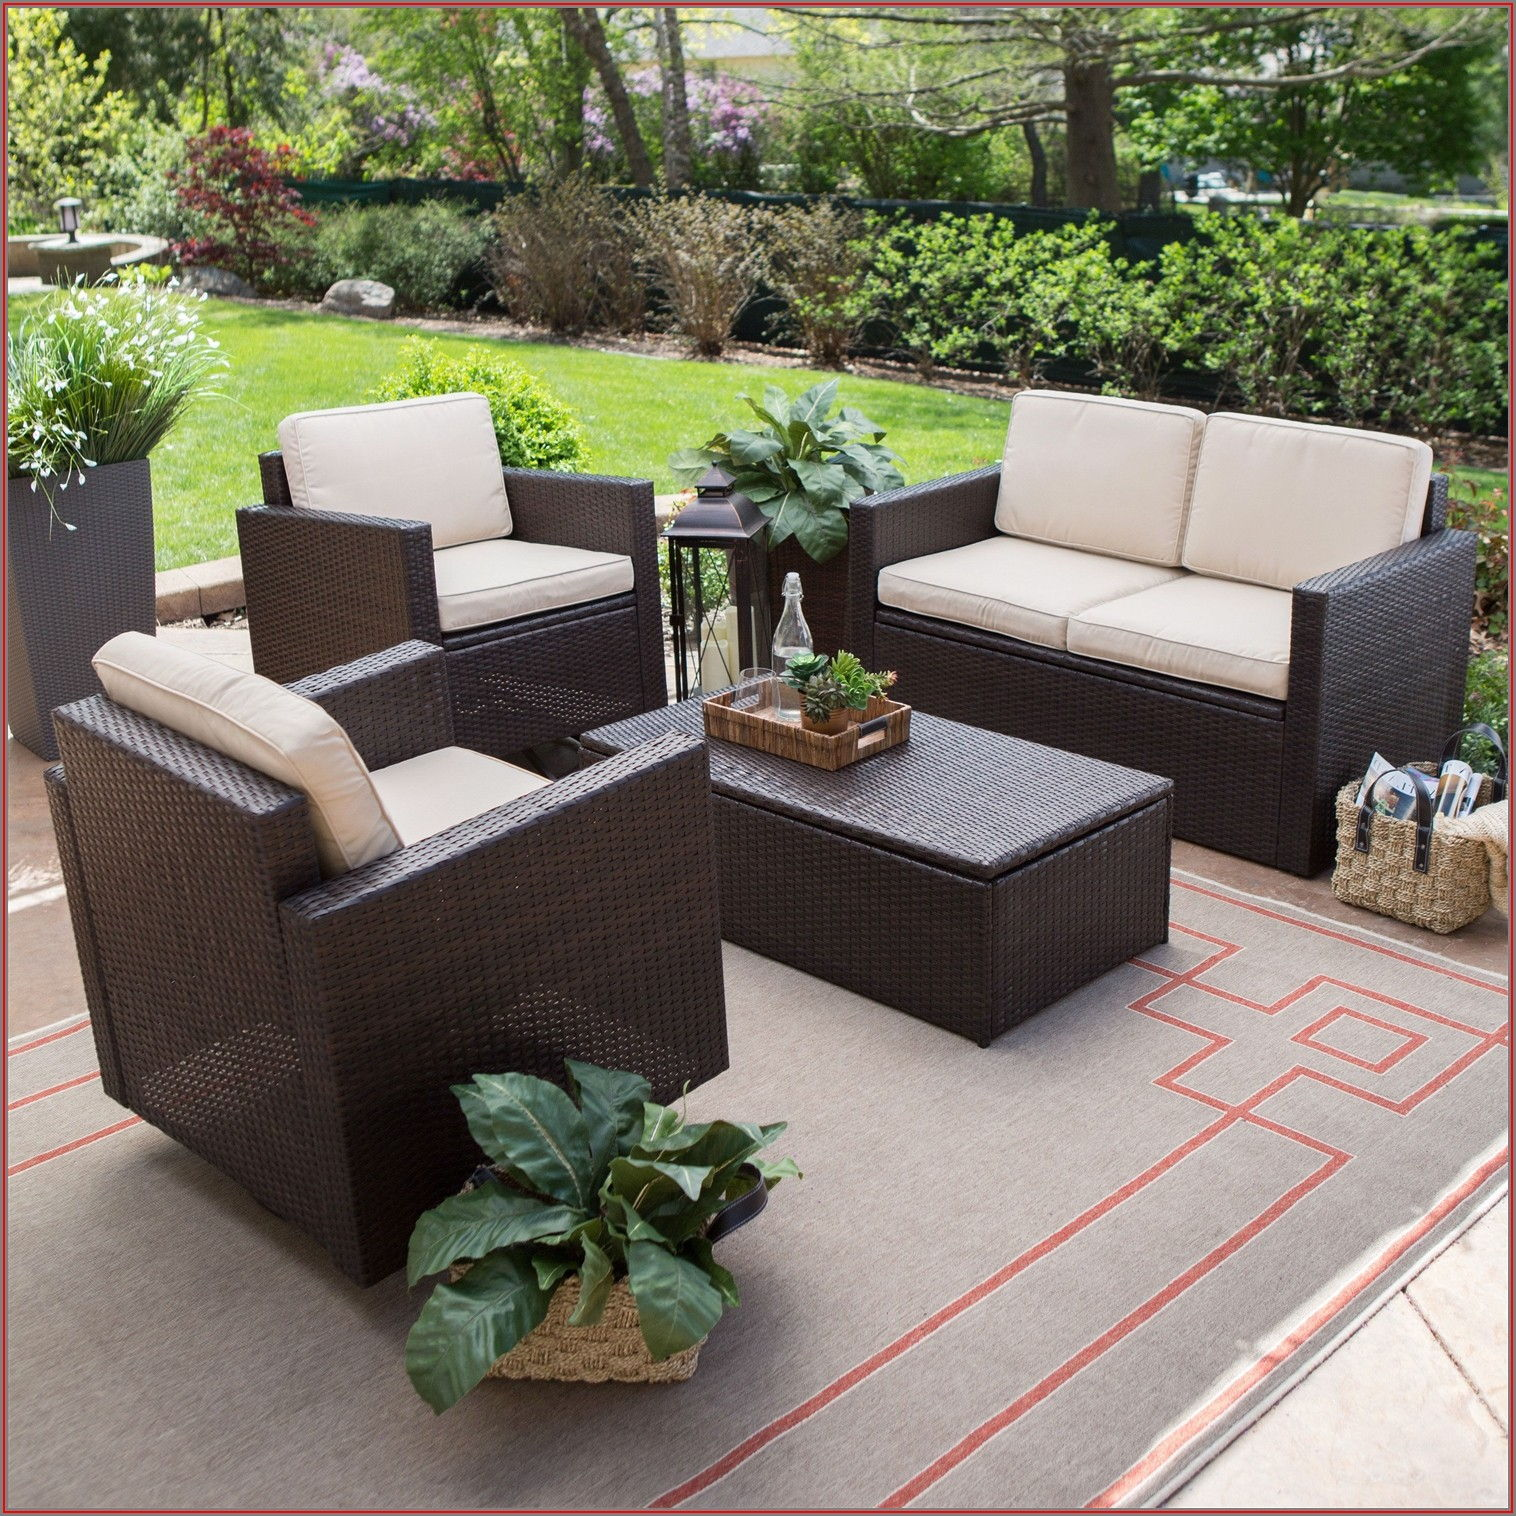 2 Piece Patio Furniture Set